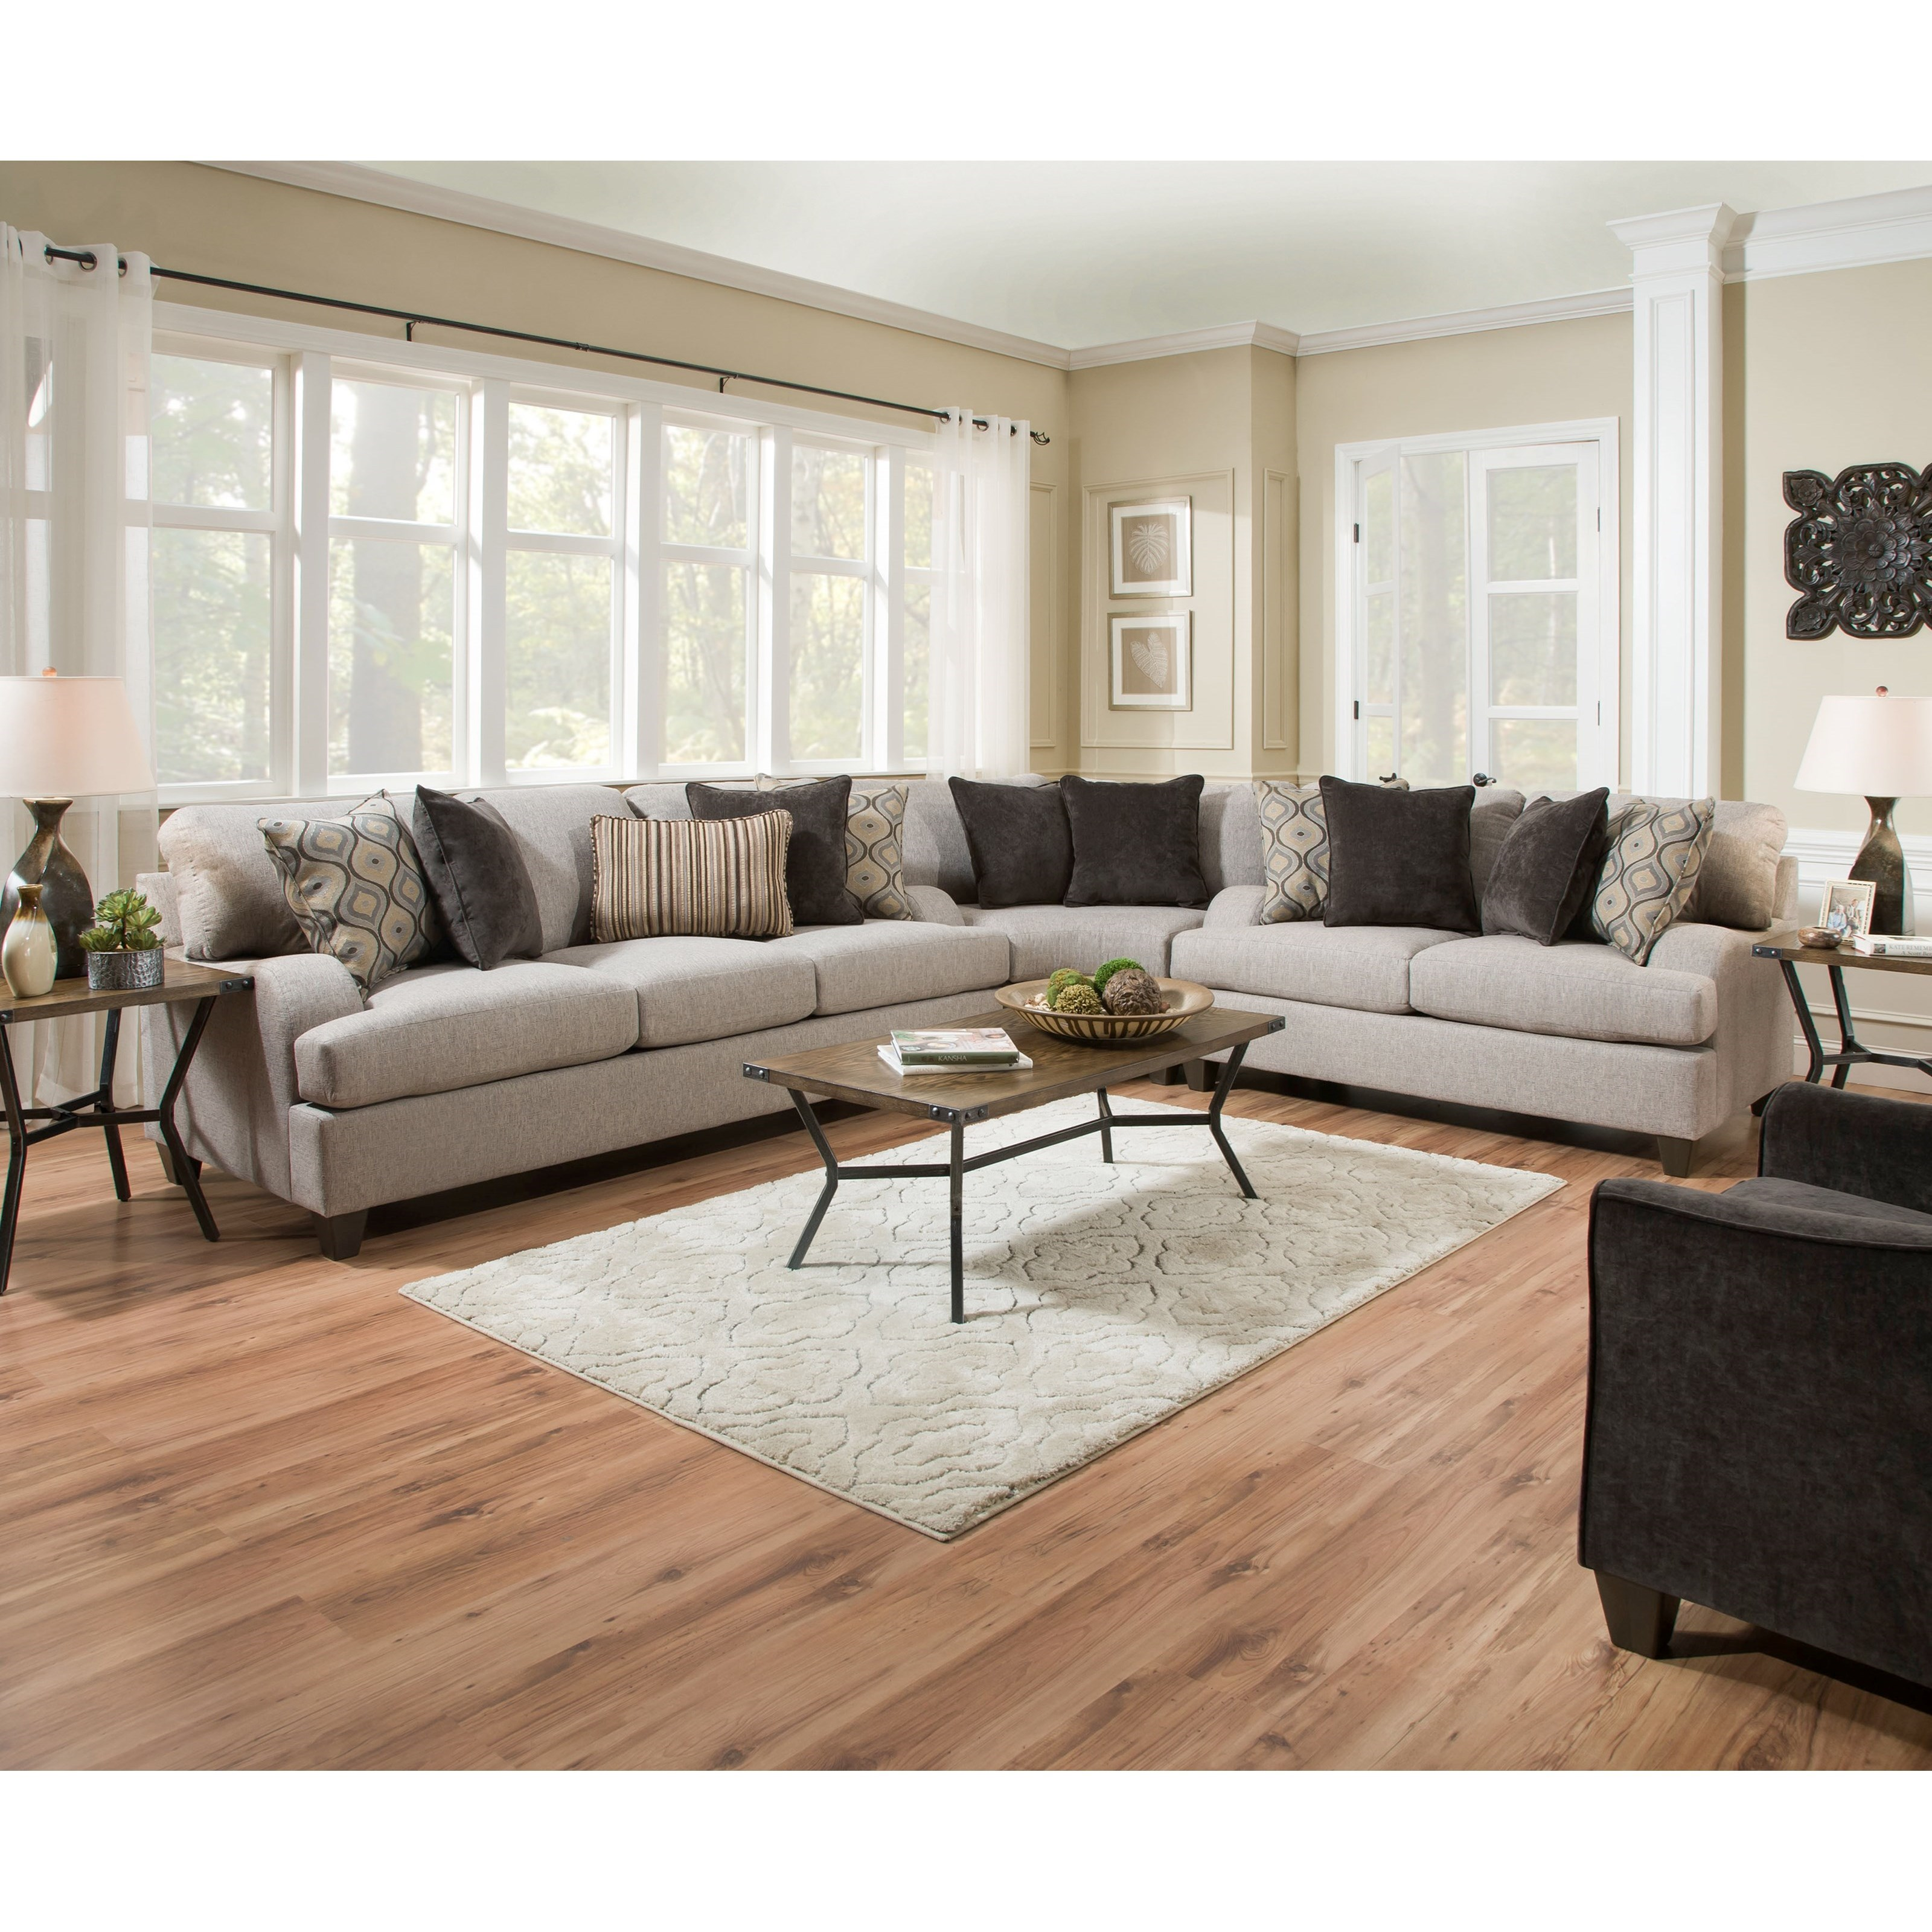 Simmons upholstery 4002 transitional sectional sofa for Simmons upholstery sectional sofa